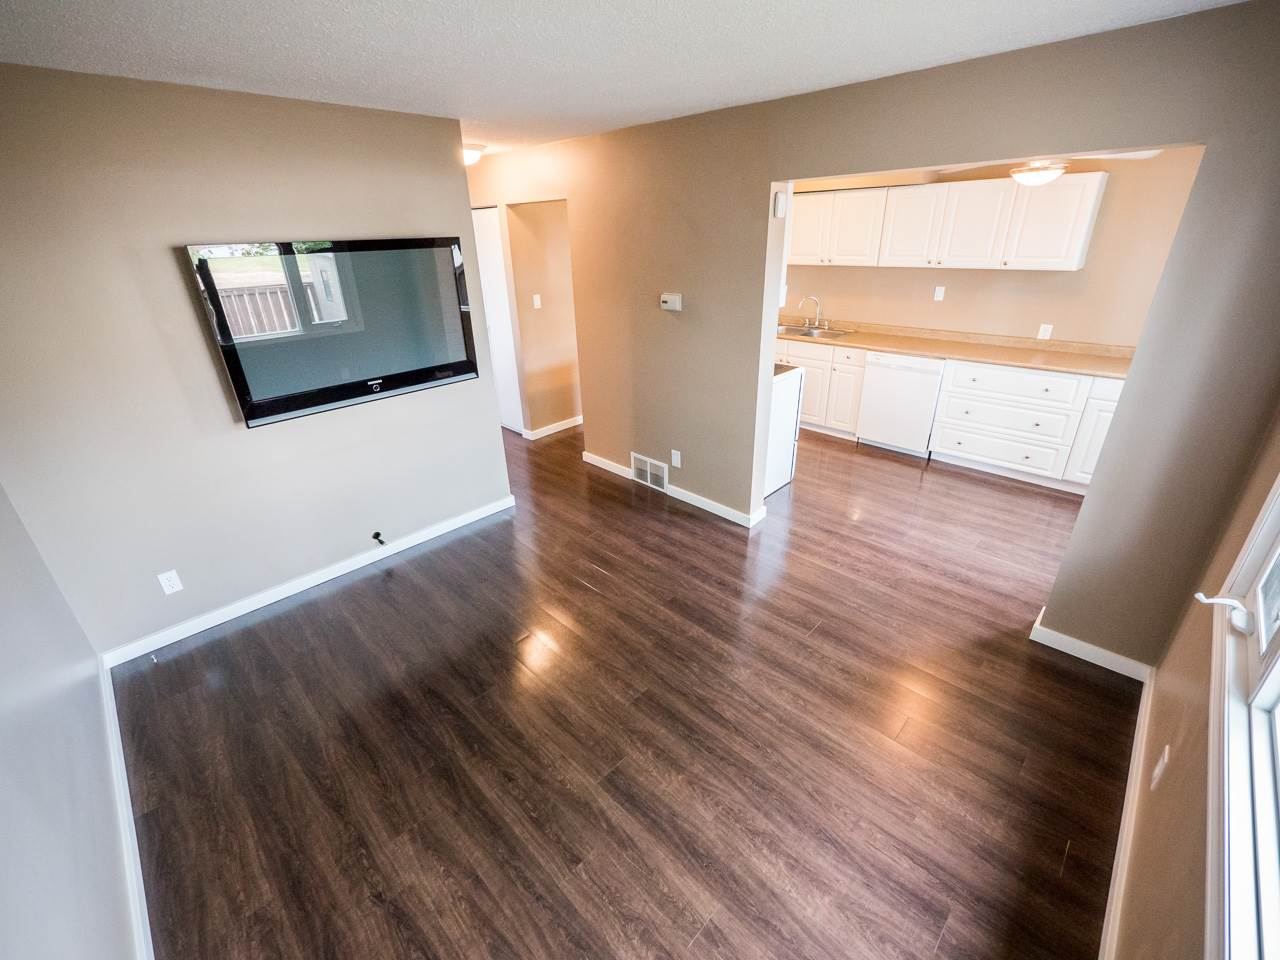 Main Photo: 7 14240 80 Street in Edmonton: Zone 02 Townhouse for sale : MLS® # E4072640